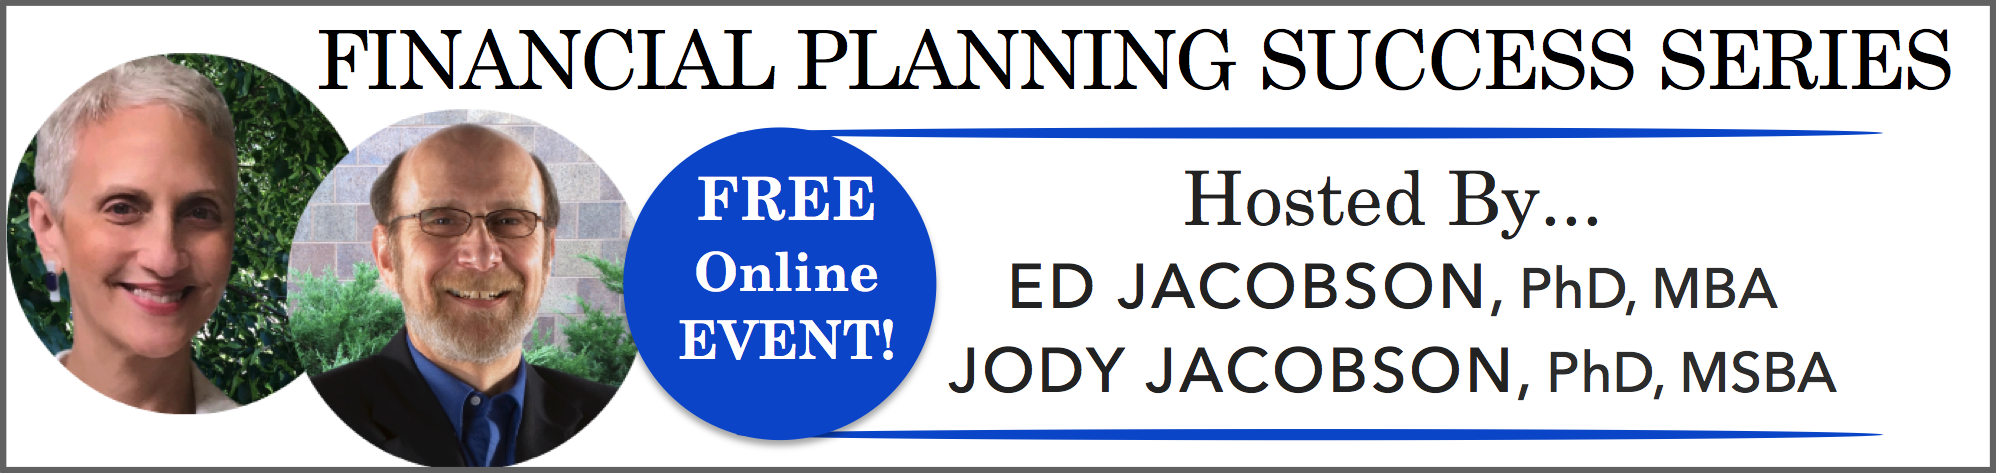 Financial Planning Success Series with Ed Jacobson, PhD and Jody Jacobson, PhD